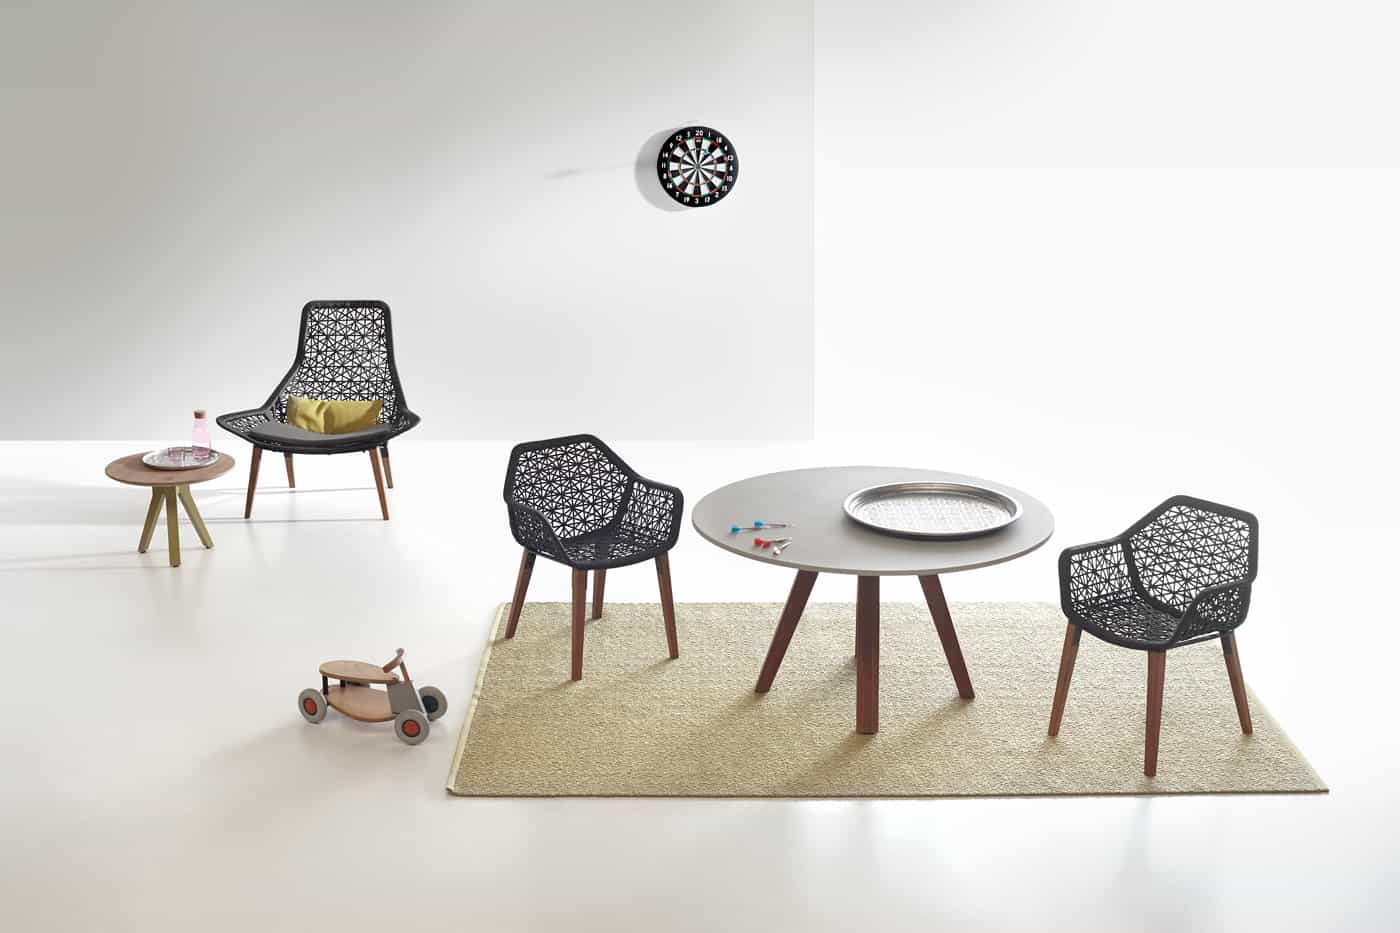 egg swing chair thomasville wingback chairs kettal maia rope furniture collection by patricia urquiola